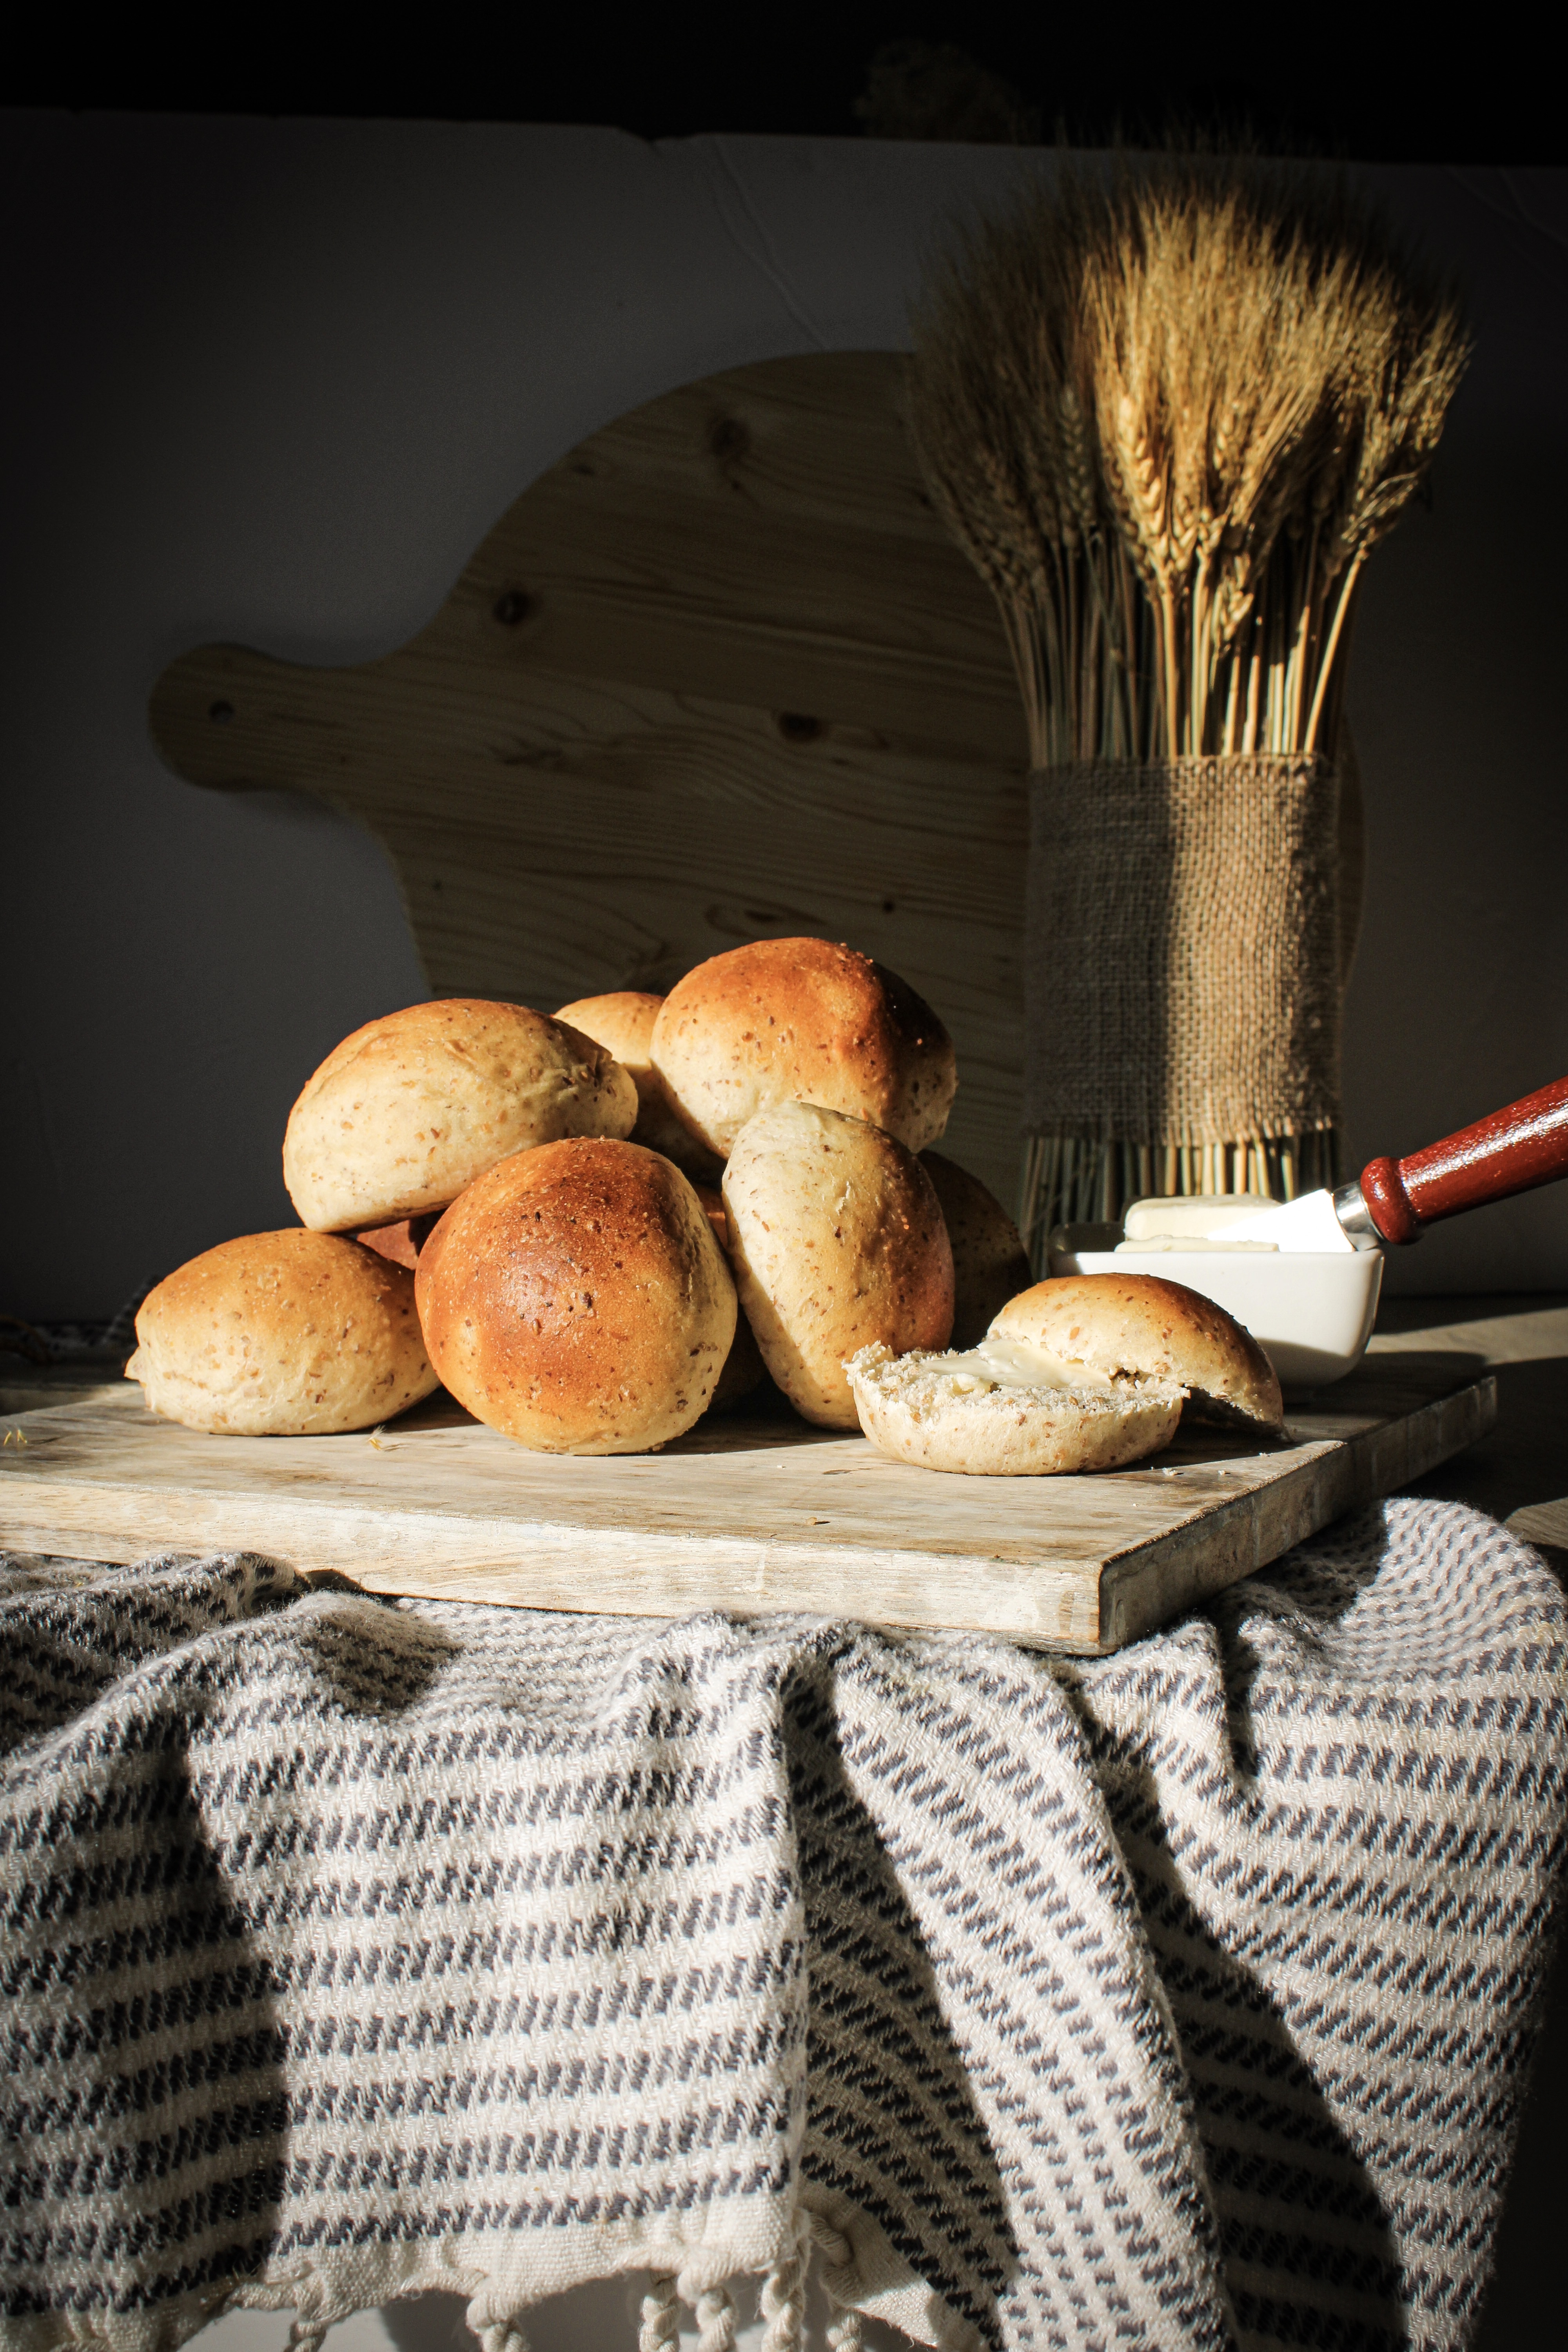 Whole Wheat and Flax Seed Dinner Rolls